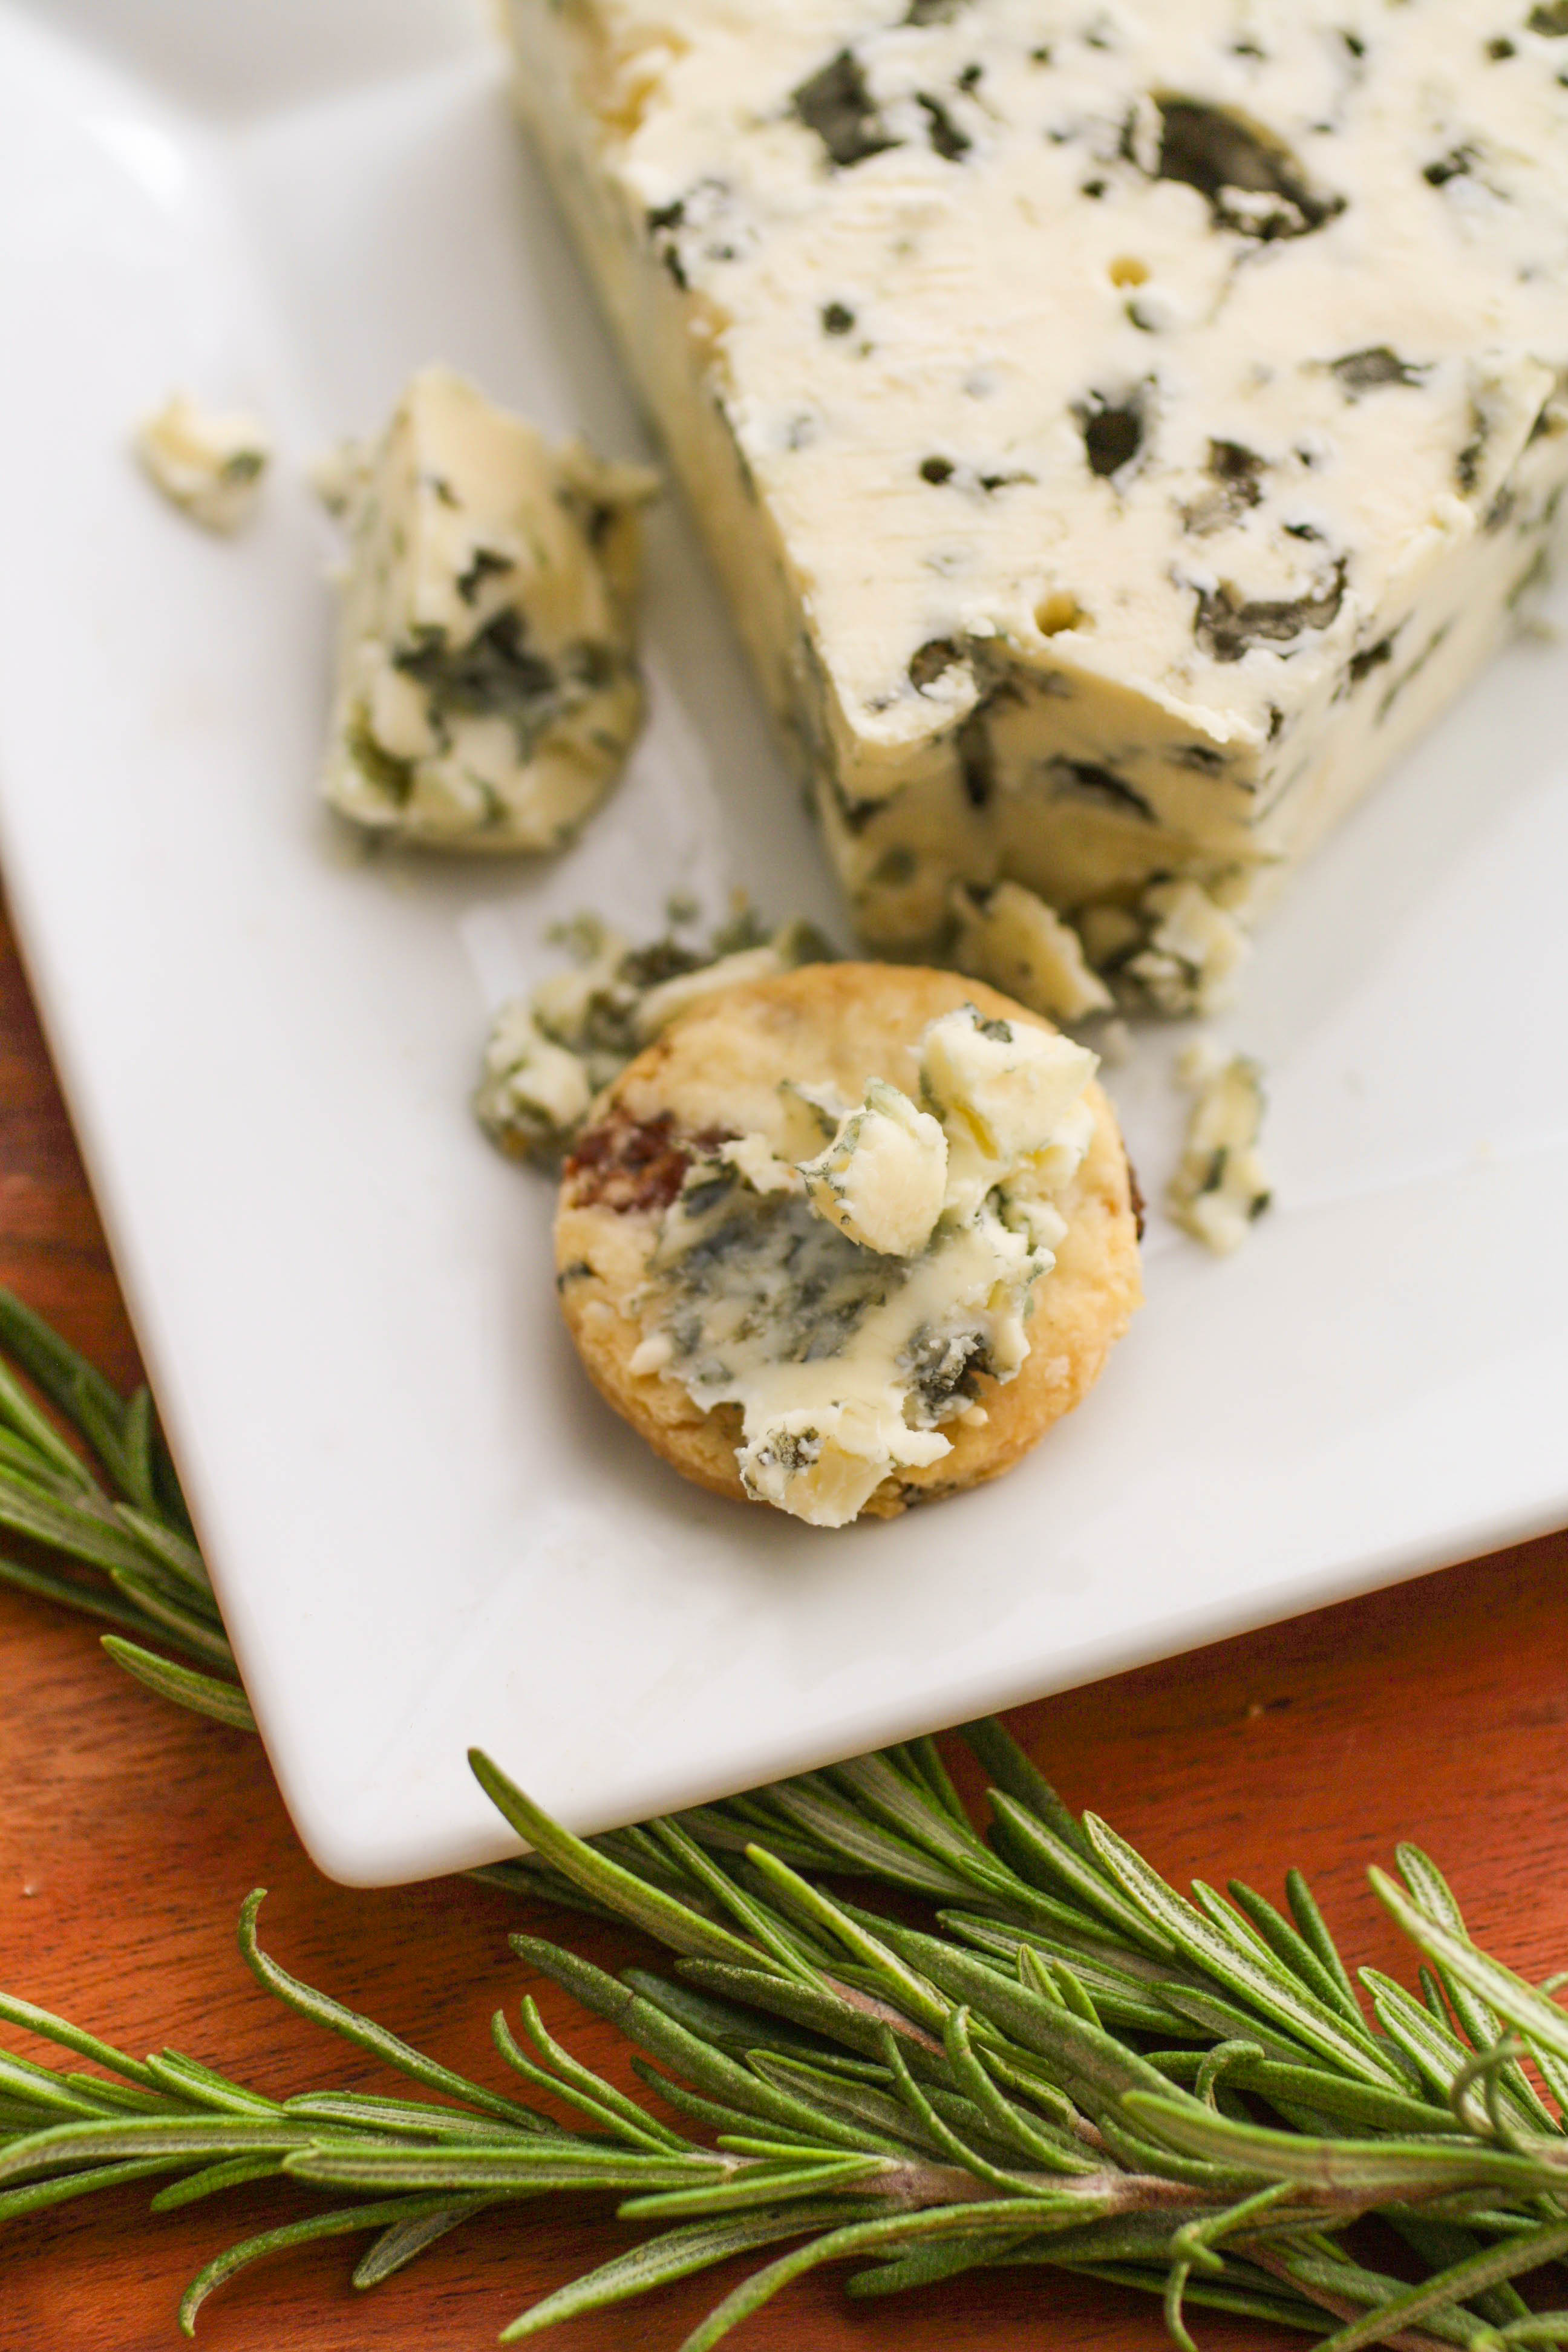 Fig and Rosemary Crackers are so tasty as a snack. You'll love Fig and Rosemary Crackers to serve with a cheese platter.